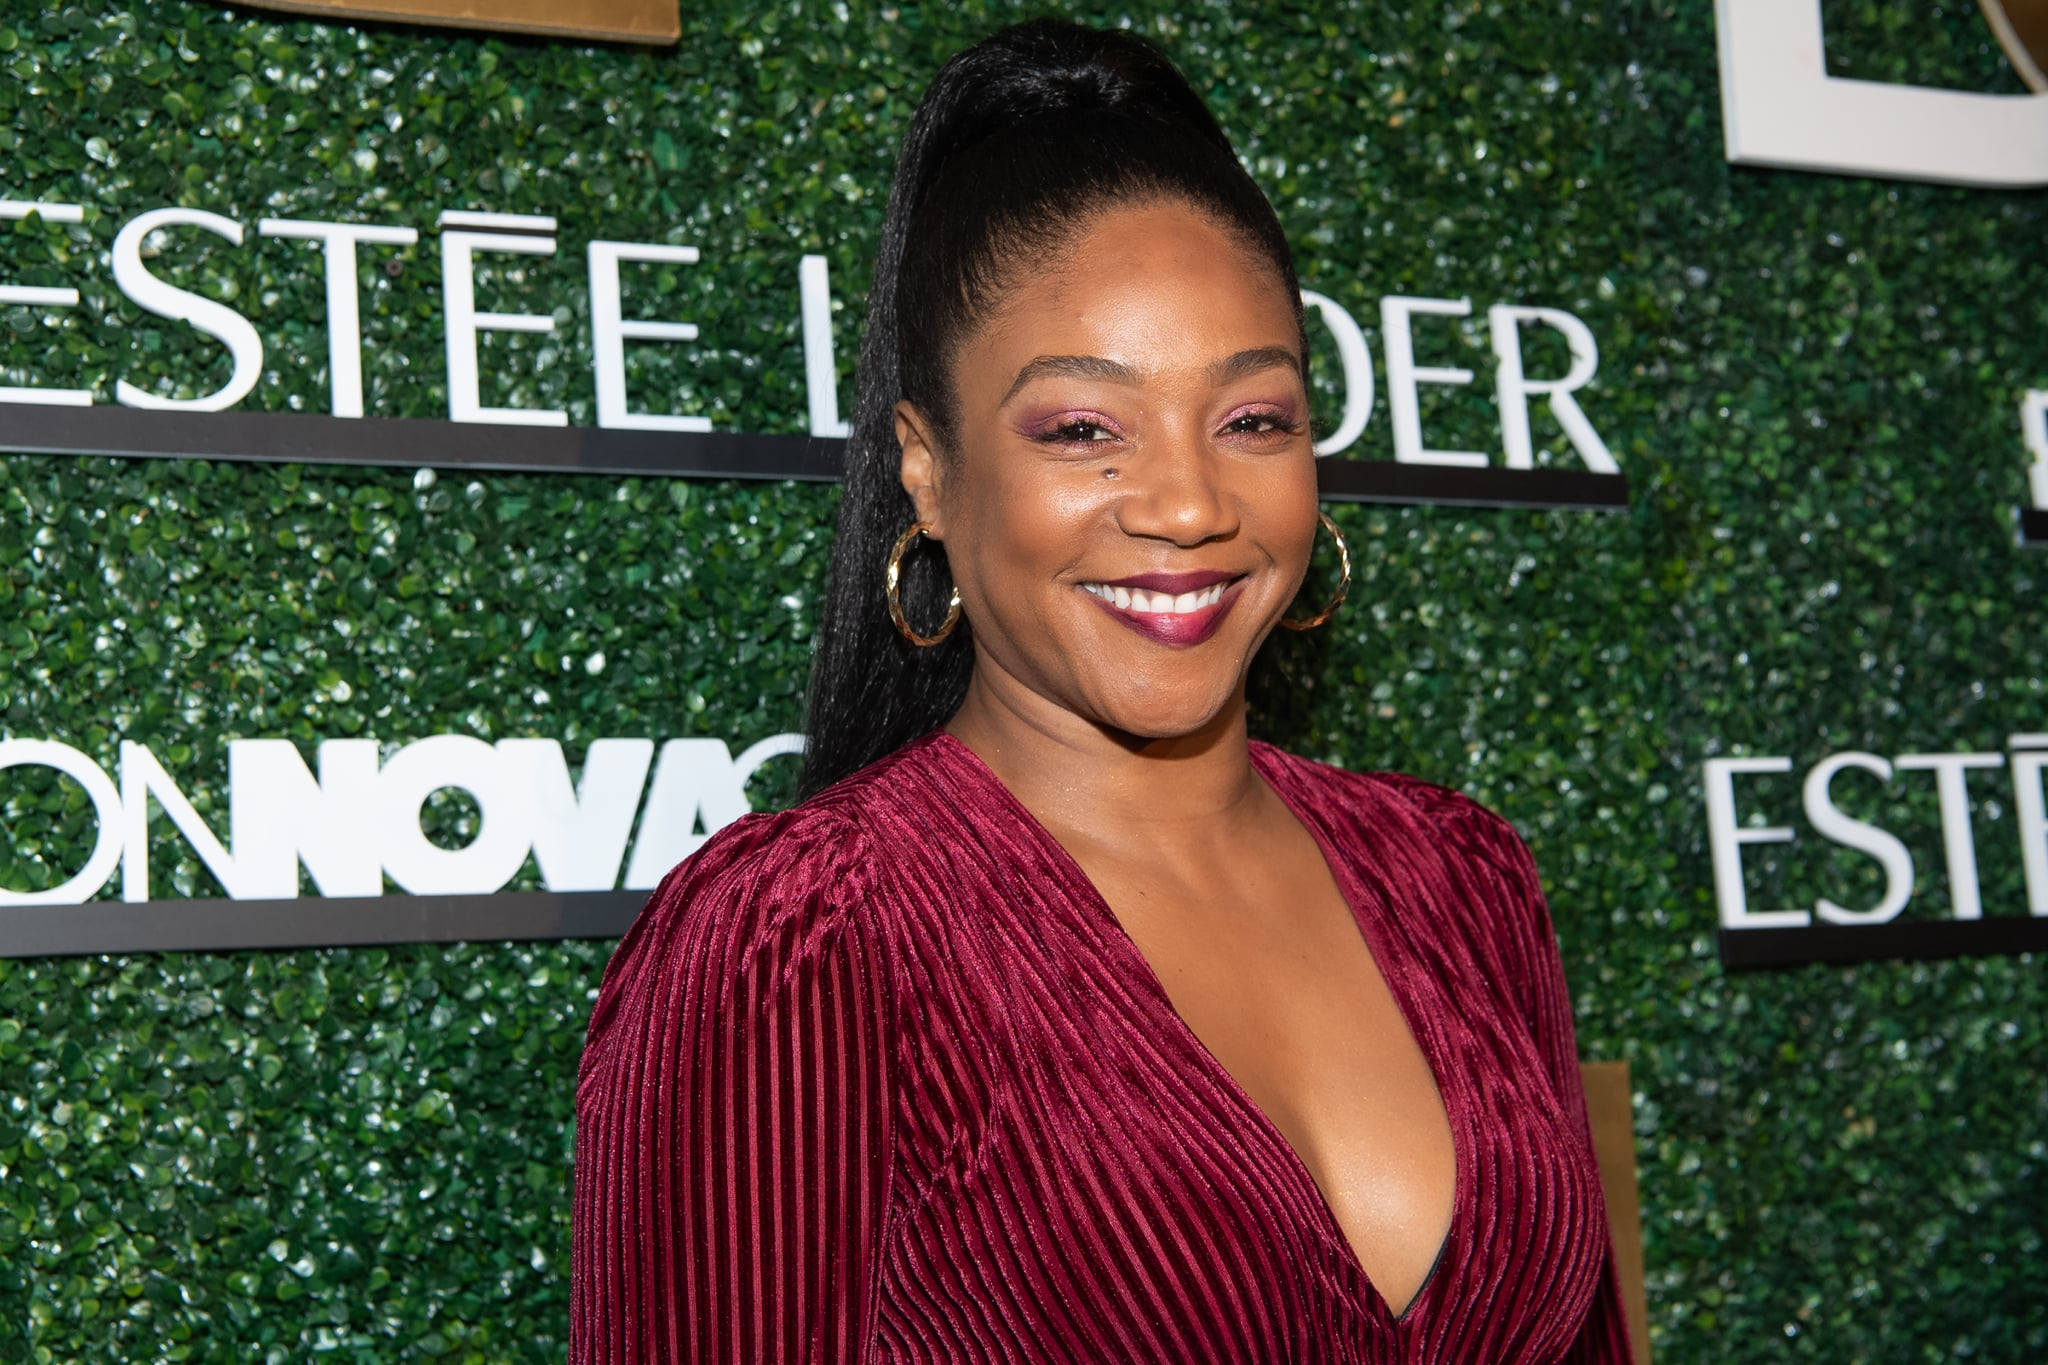 MARINA DEL REY, CALIFORNIA - MARCH 09: Tiffany Haddish attends 'Koshie Mills presents 'The Diaspora Dialogues' at Marriott Hotel Marina Del Rey on March 09, 2019 in Marina del Rey, California. (Photo by Emma McIntyre/Getty Images)